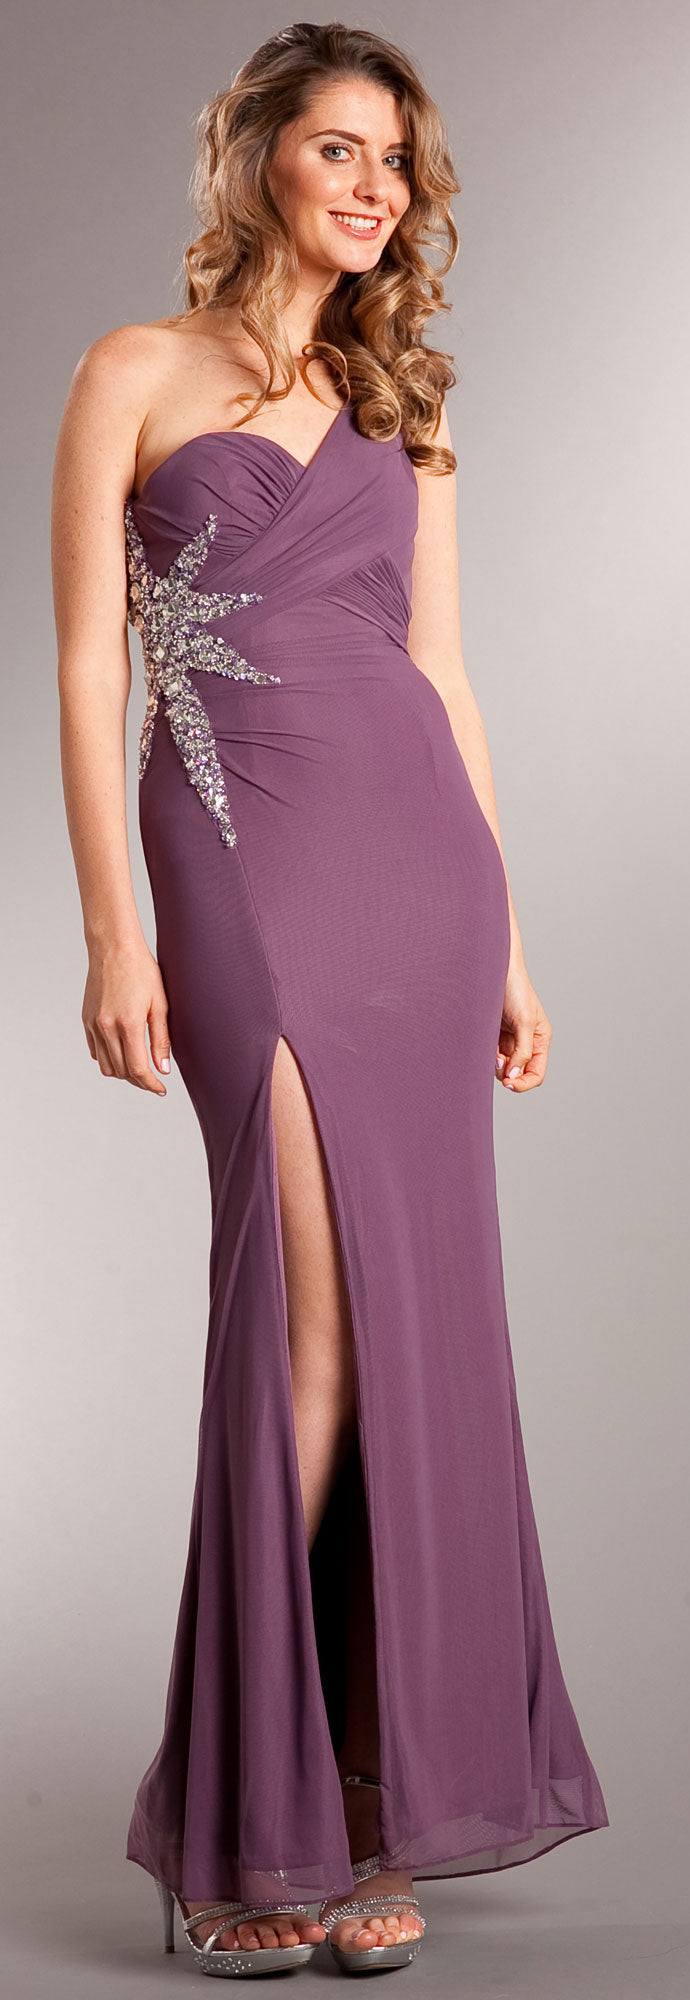 Main image of One Shoulder Long Formal Dress With Bejeweled Waist